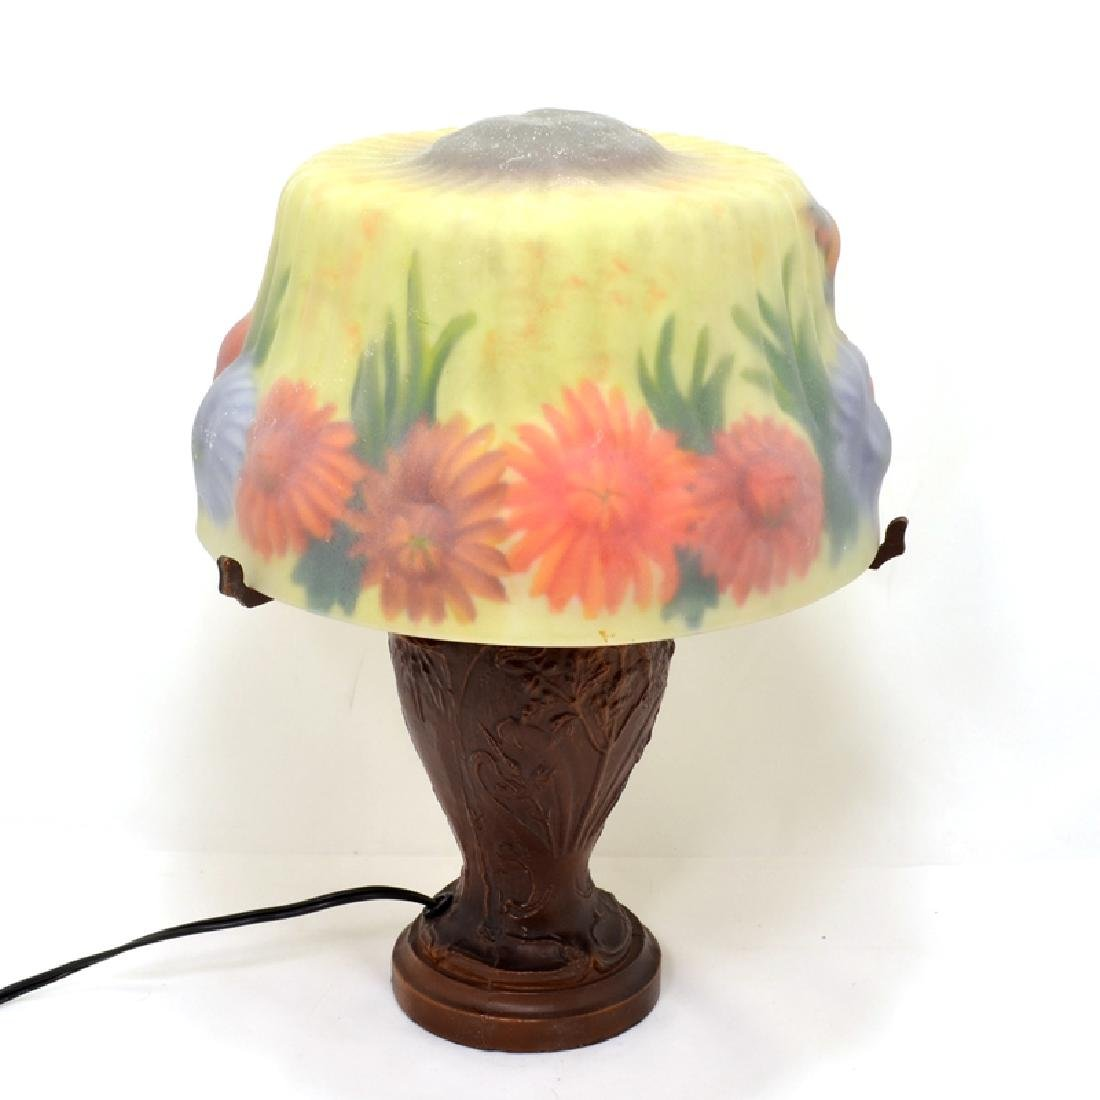 9.4 Inch Pairpoint Lamp